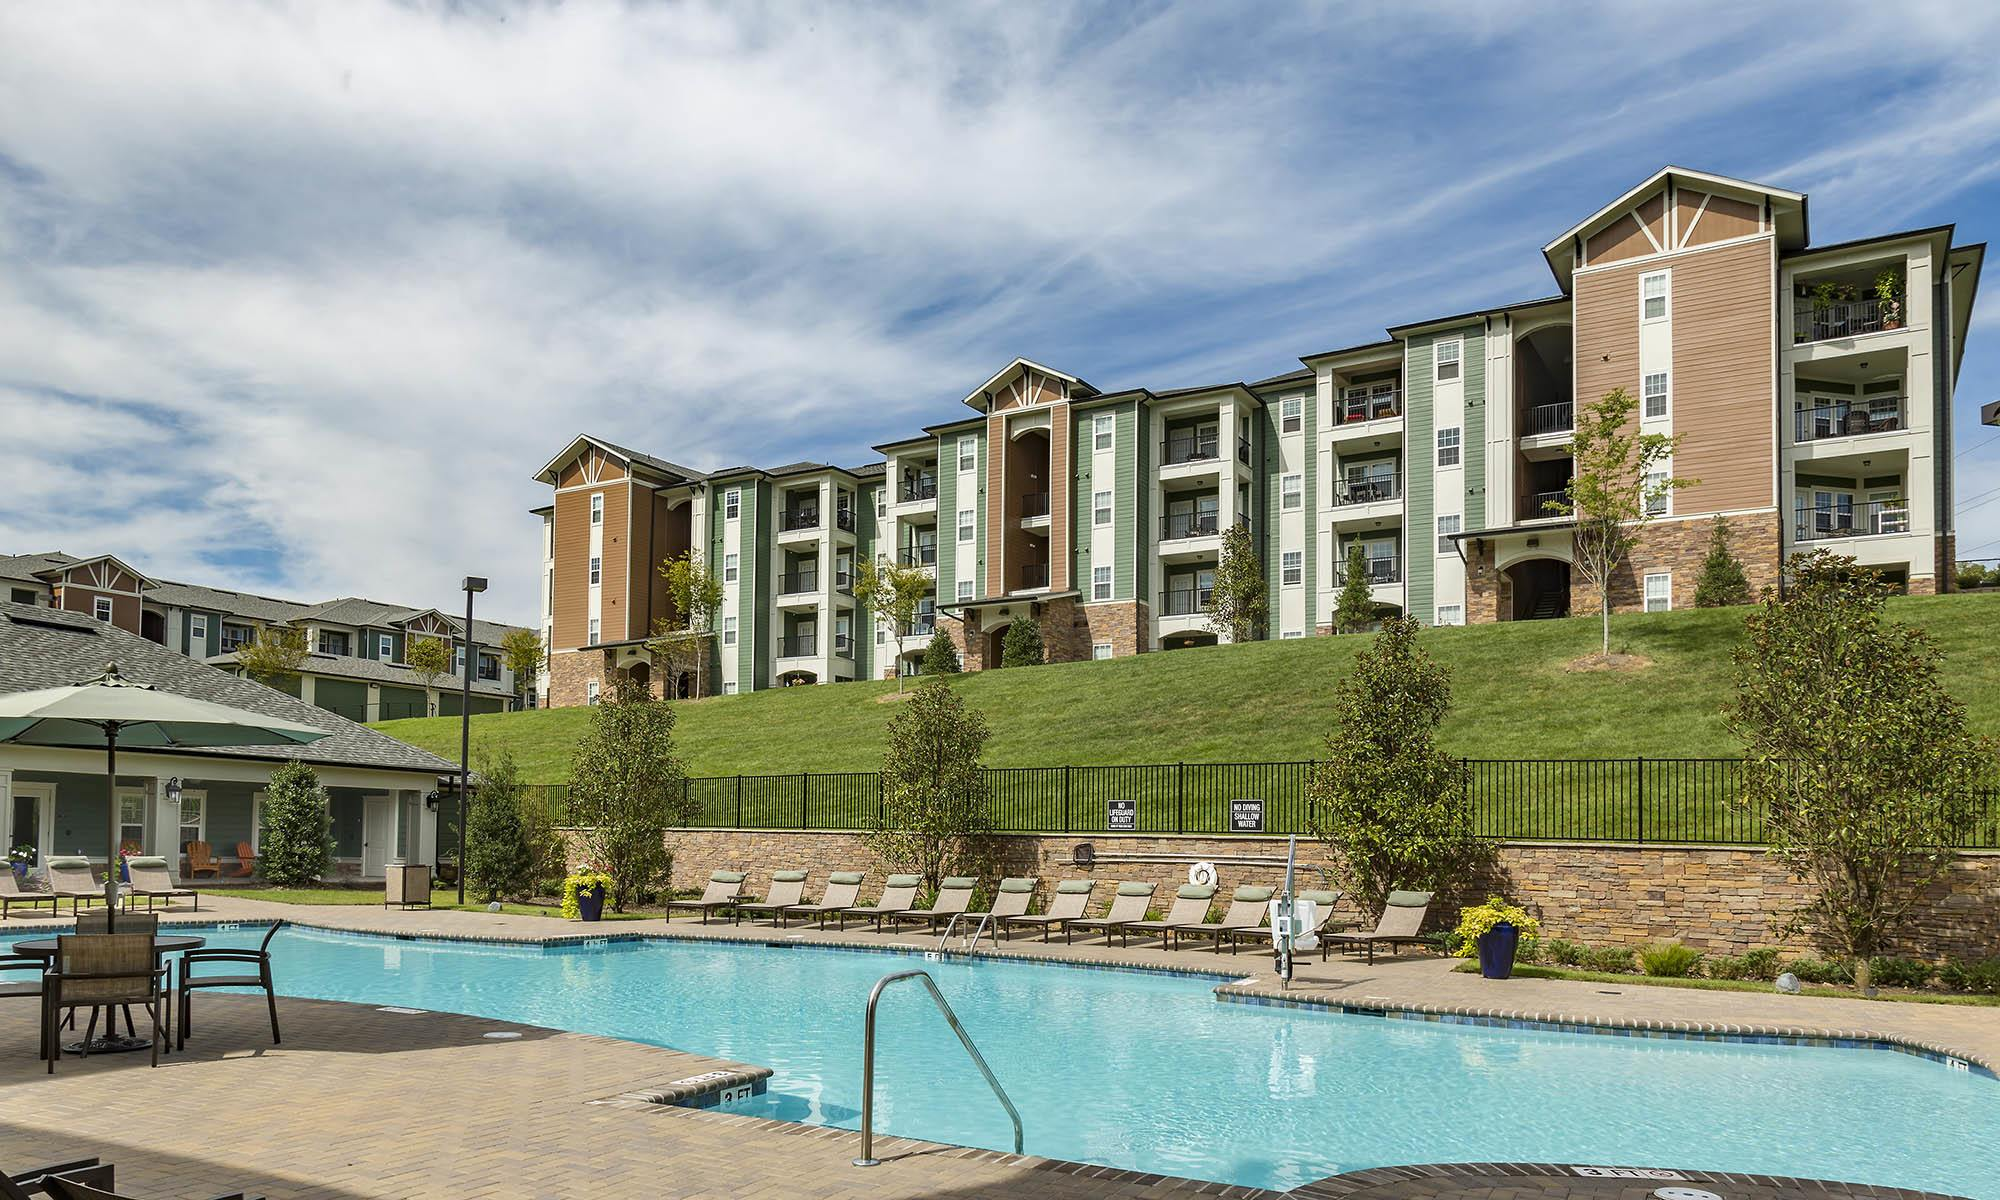 Apartments in Ooltewah, TN